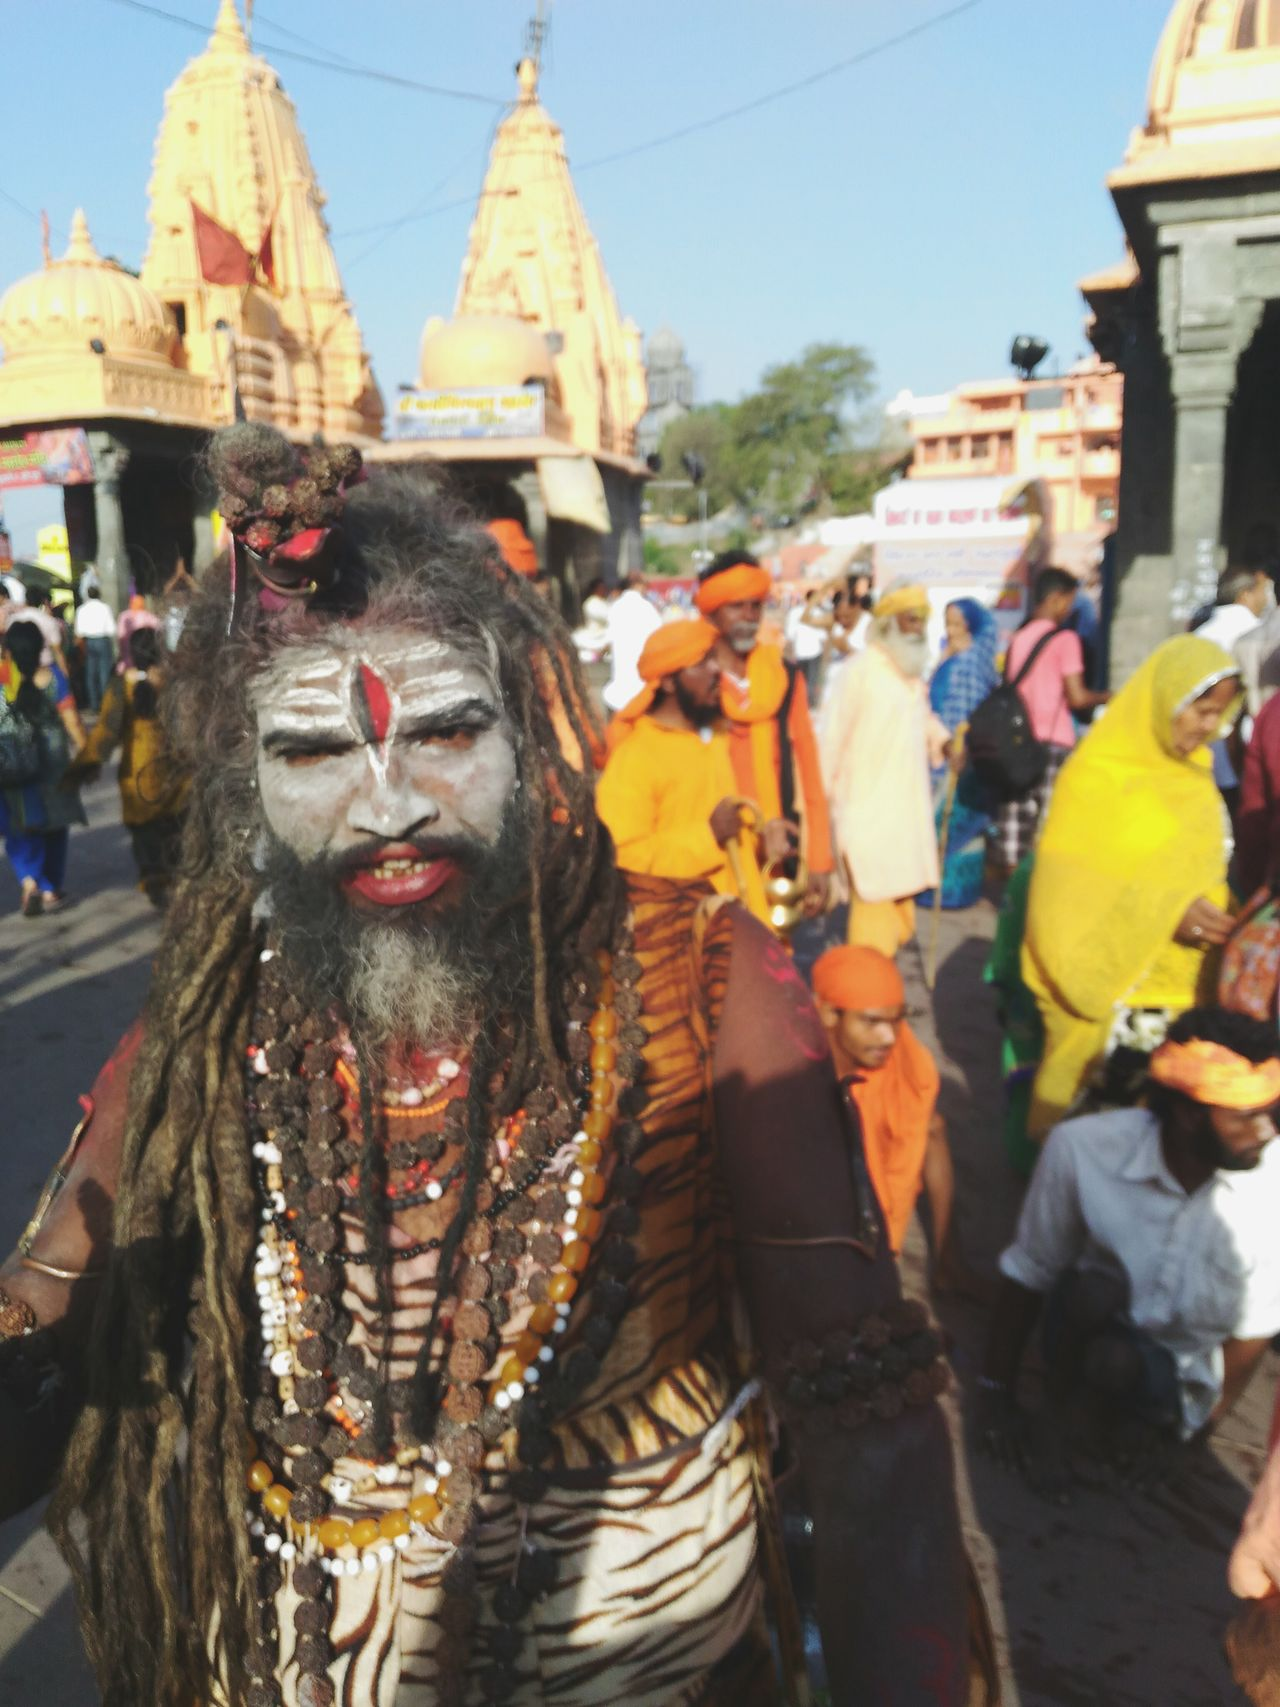 Up Close Street Photography Lord Shiva On Earth Lord Shiva Shiva Ujjain Kumbh 2016 Simhastha Festival ,Ujjain ,India Shadhu Sadhu Of India Baba India Faith On God The Portraitist - 2016 EyeEm Awards